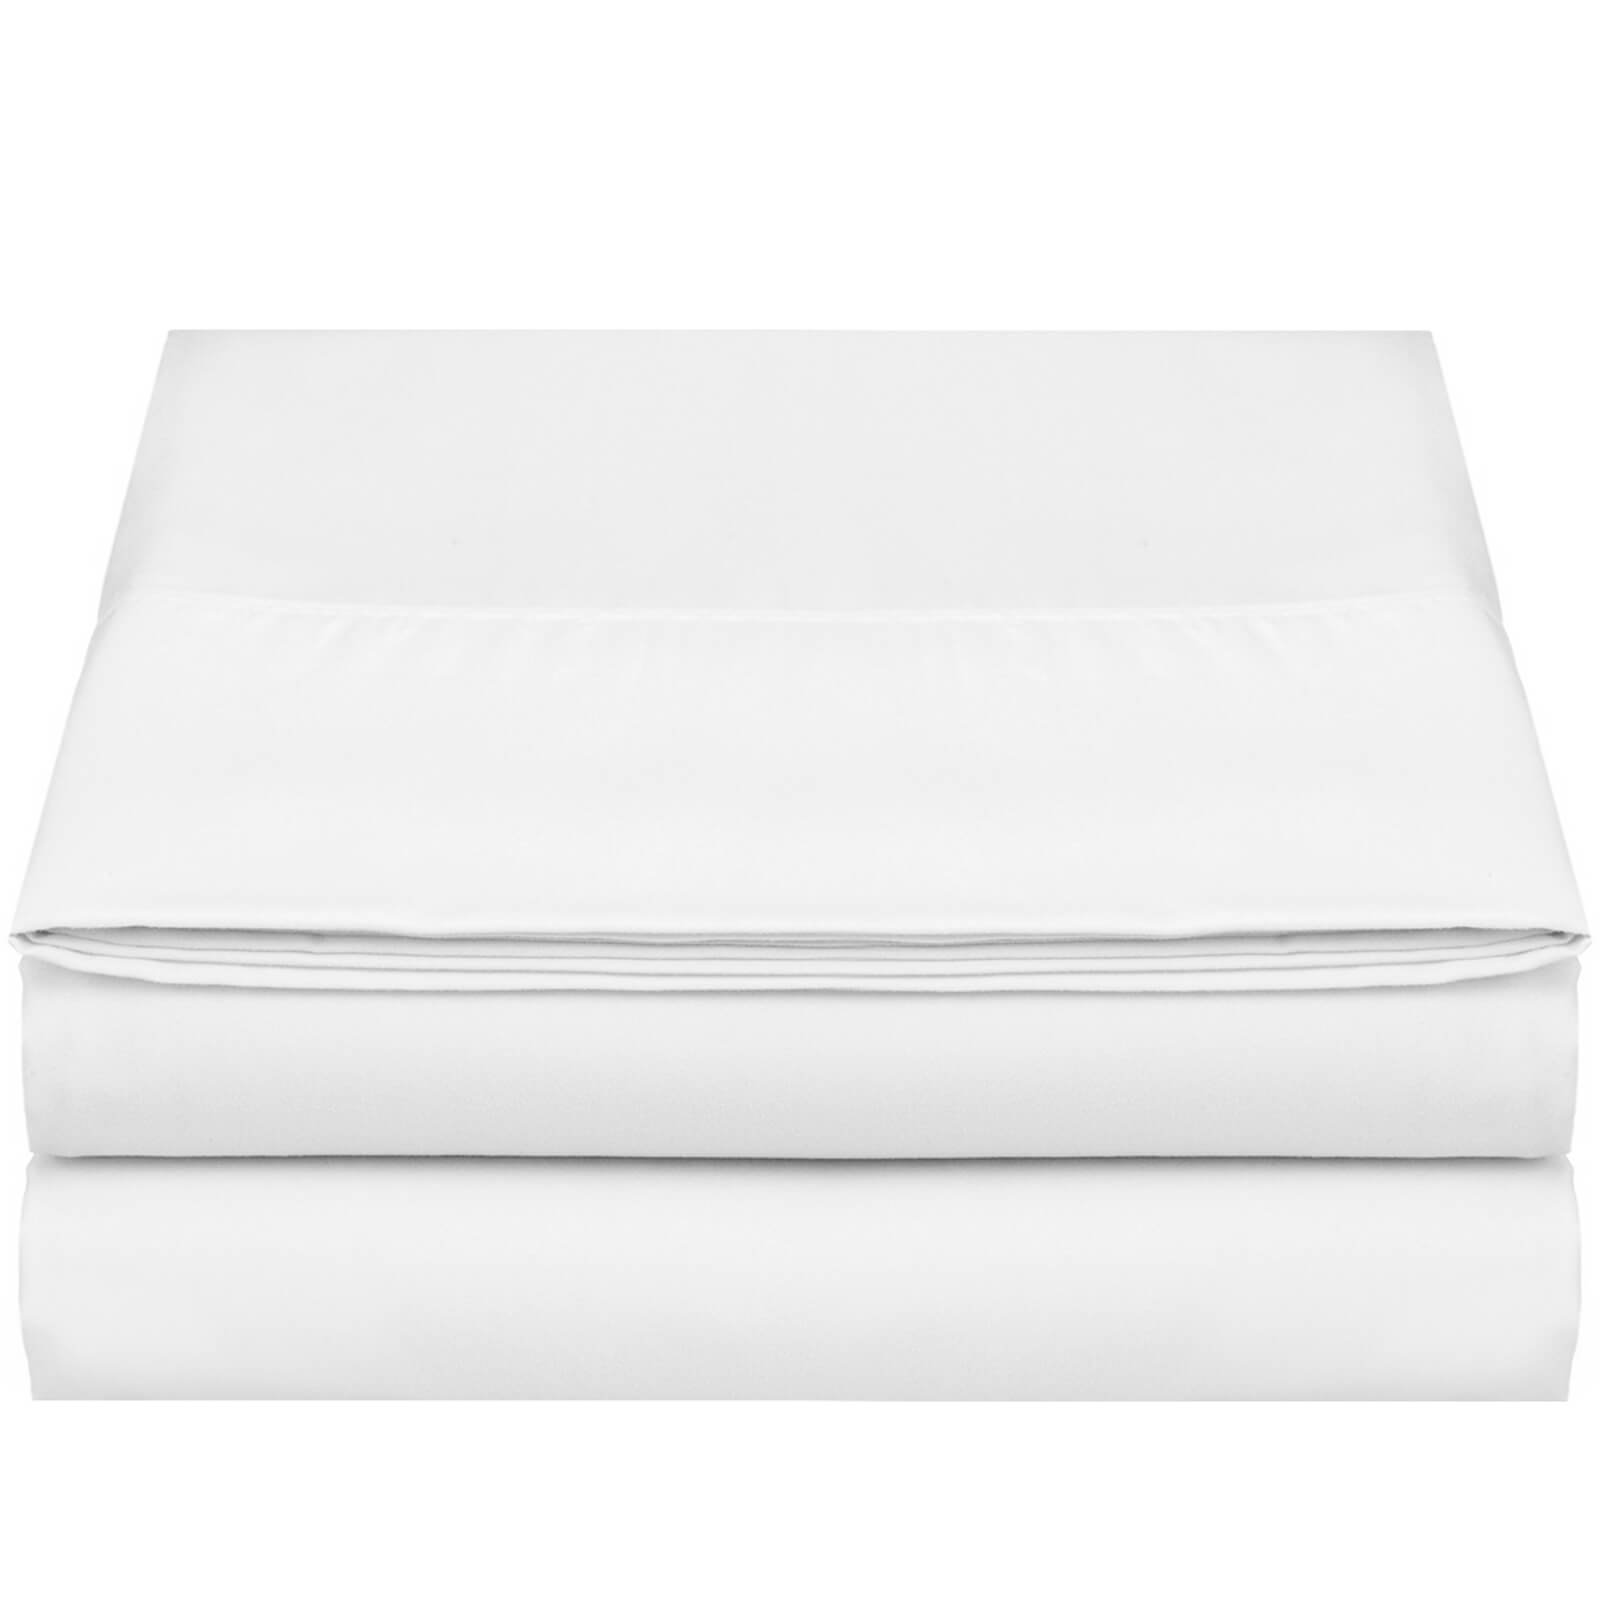 """Empyrean Bedding Premium Flat Sheet – """"110 GSM"""" Double Brushed Microfiber Extra Thick and Comfortable Flat Sheets, Luxurious & Soft Hotel Single Top Bed Sheet Hypoallergenic, Queen, White"""